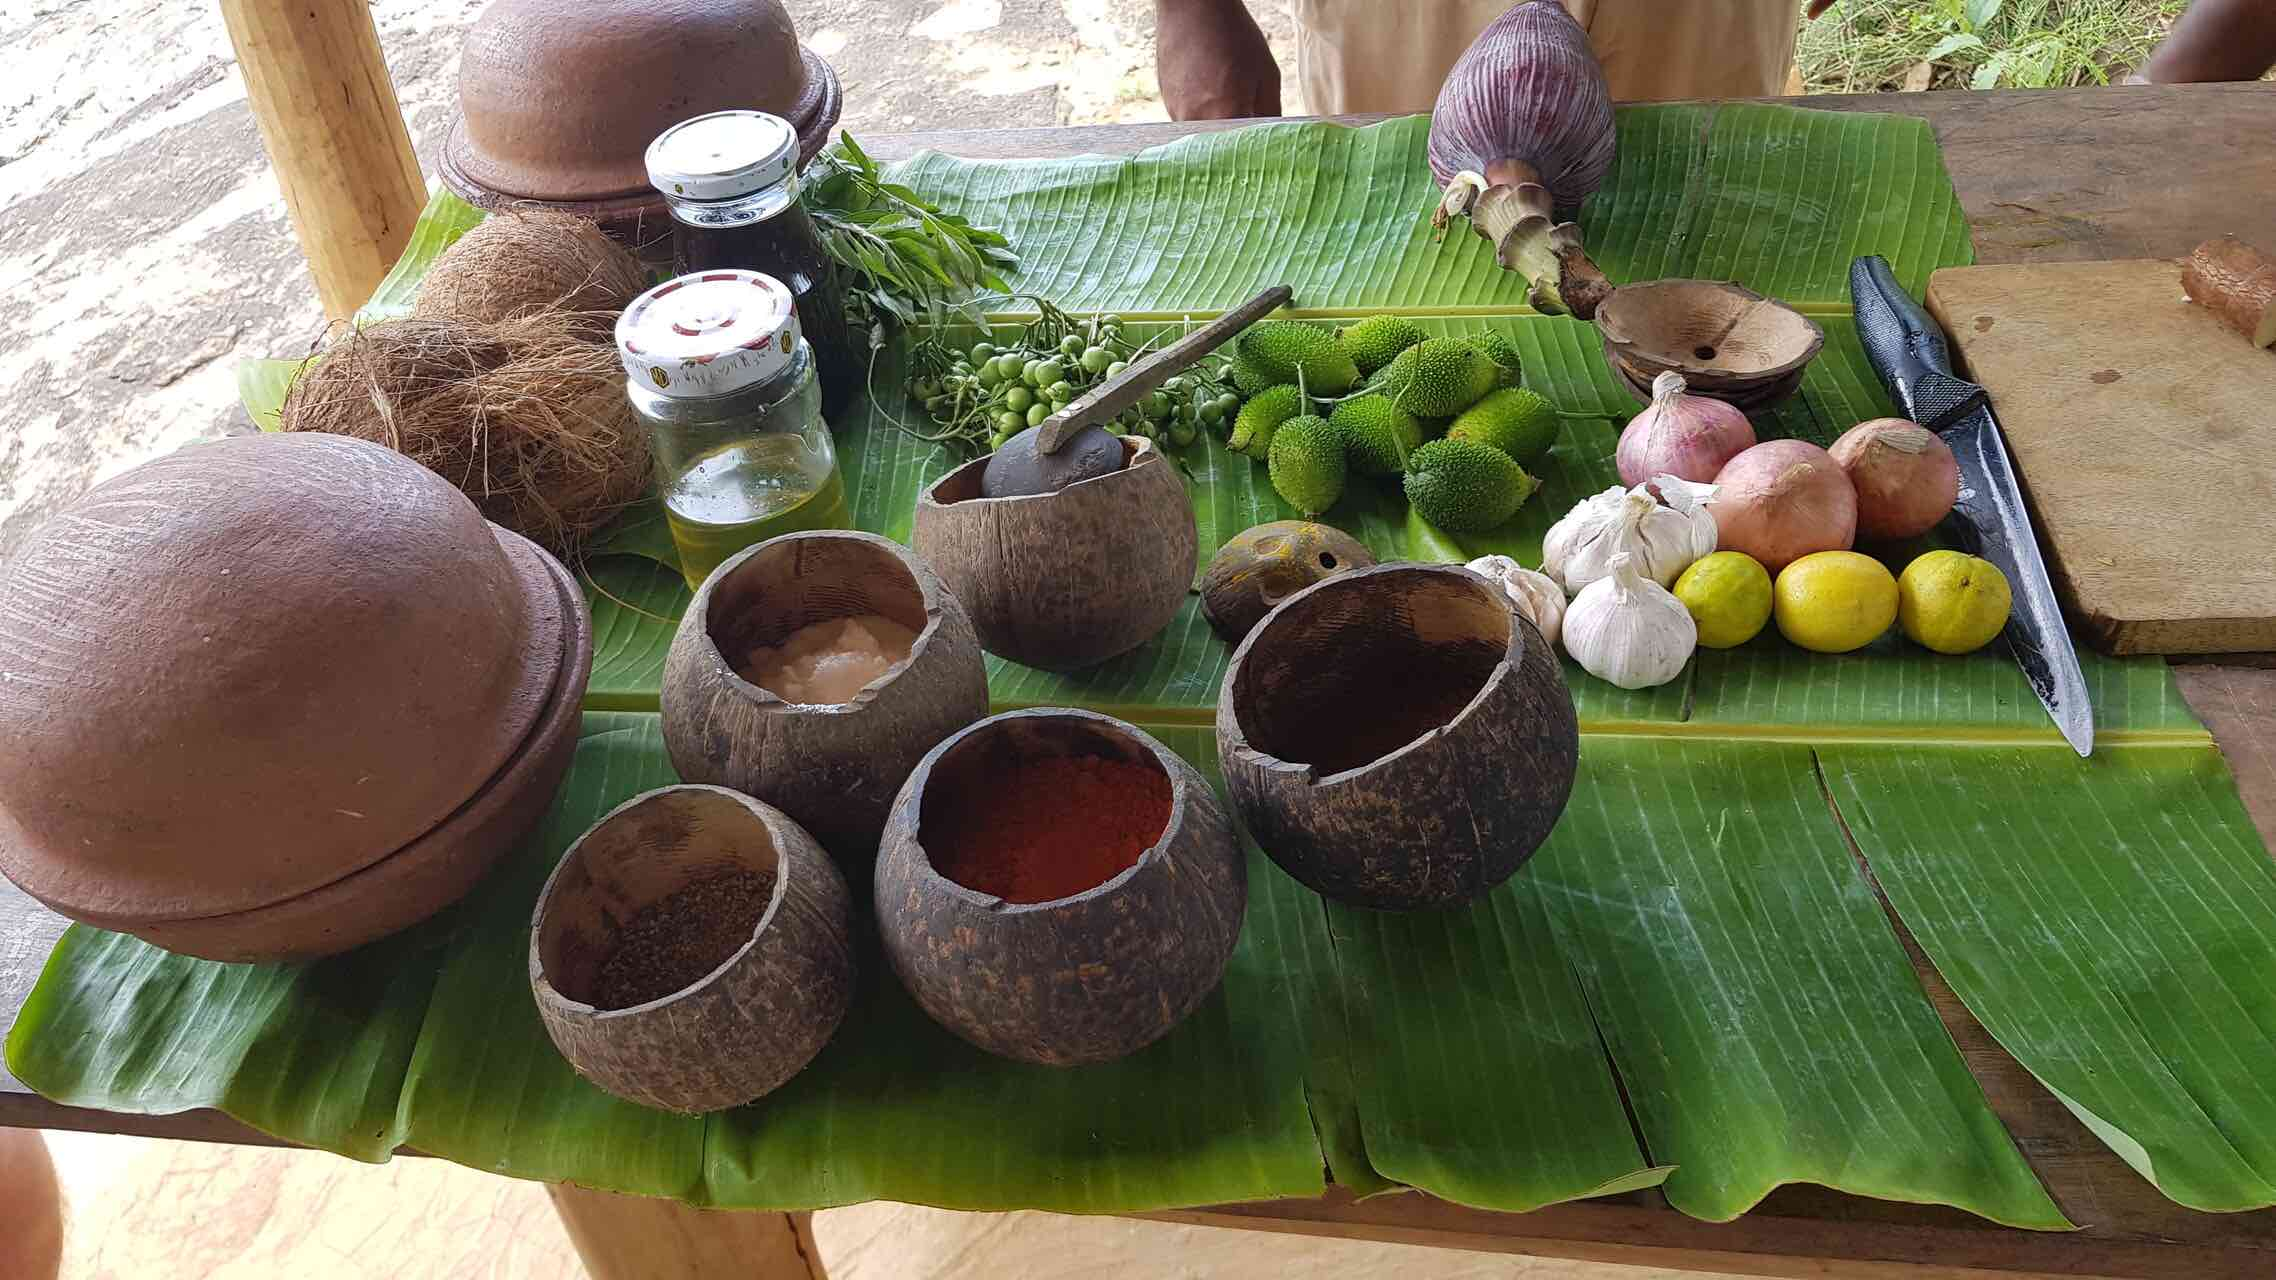 sri-lanka-cooking-class-holiday-review-feedback-invite-to-paradise-quentin-kate-hulm.jpg